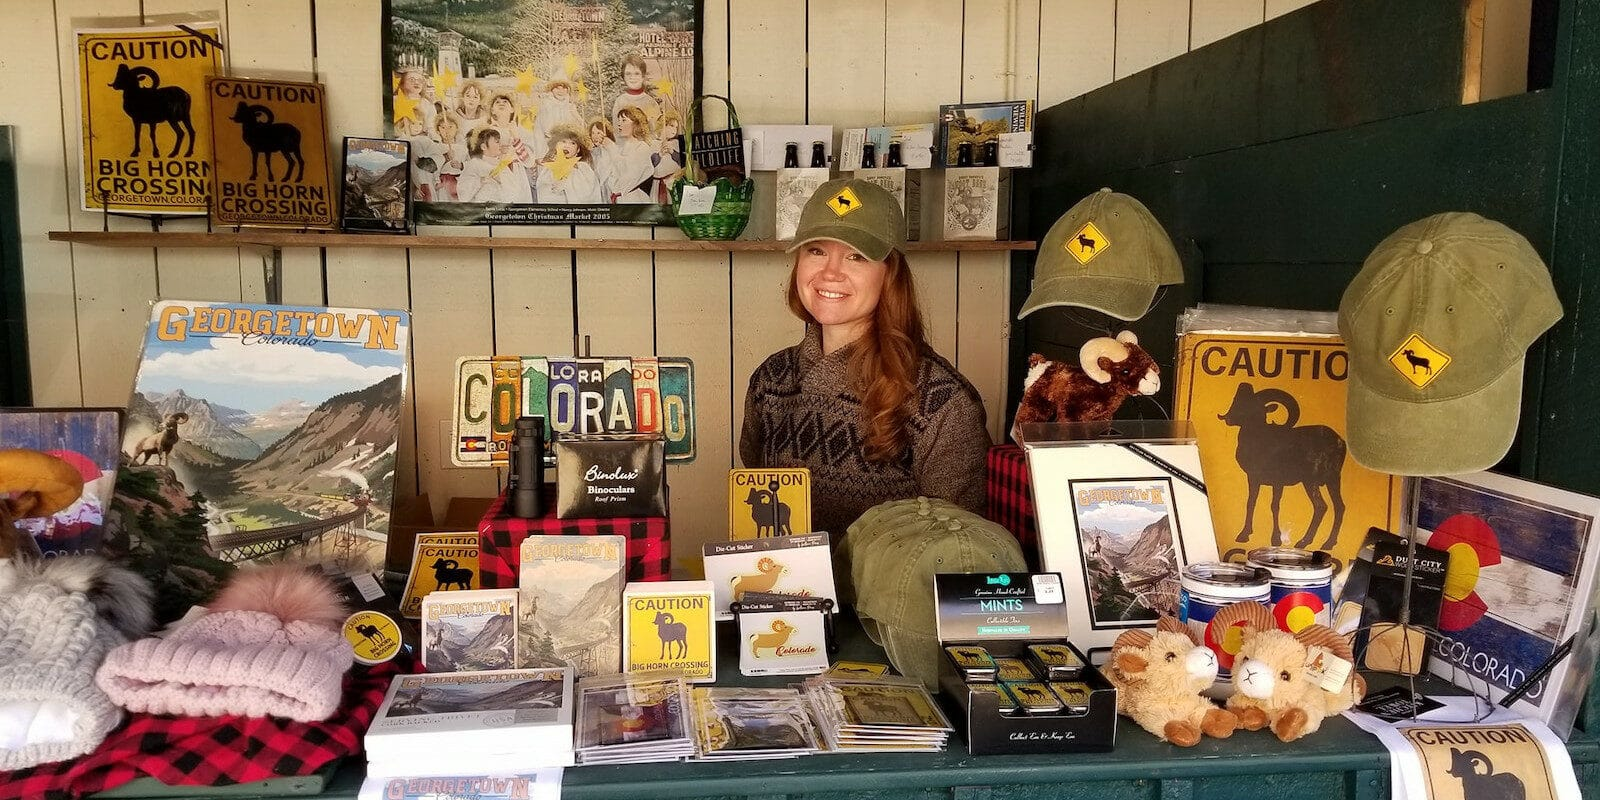 Image of a vendor at the Georgetown Bighorn Festival in Colorado